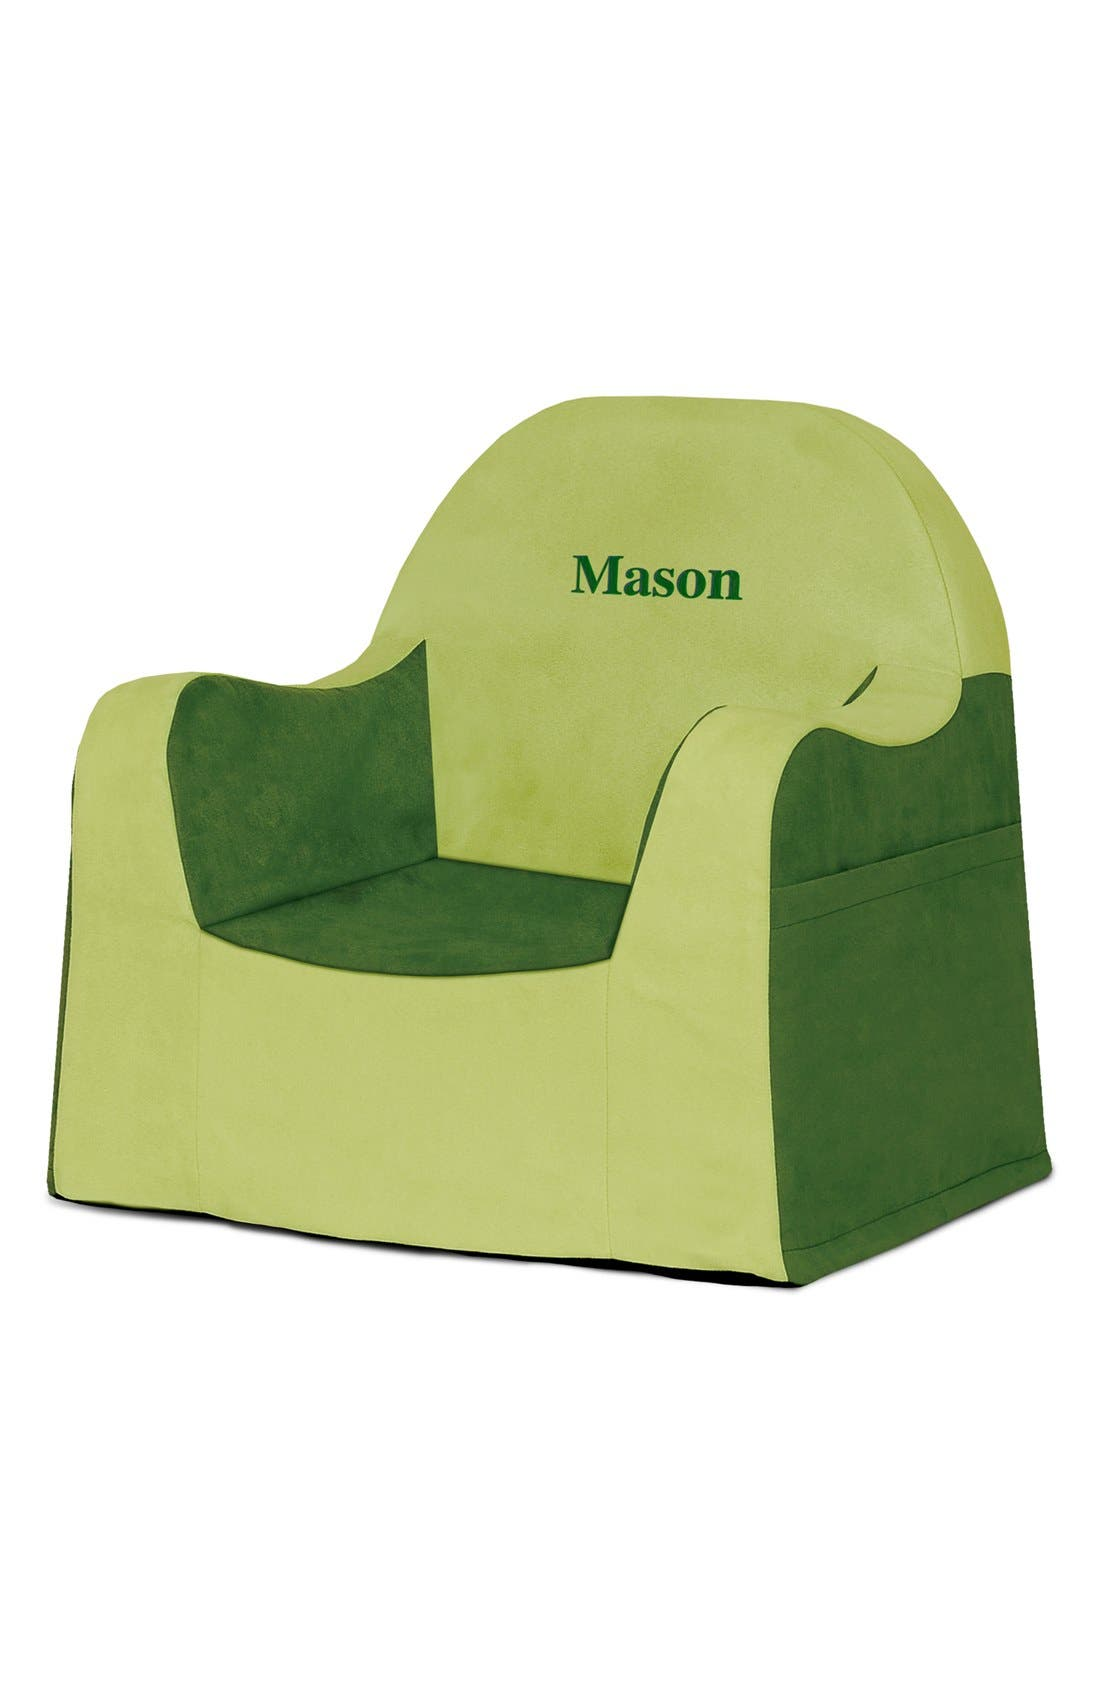 'Personalized Little Reader' Chair,                         Main,                         color, GREEN